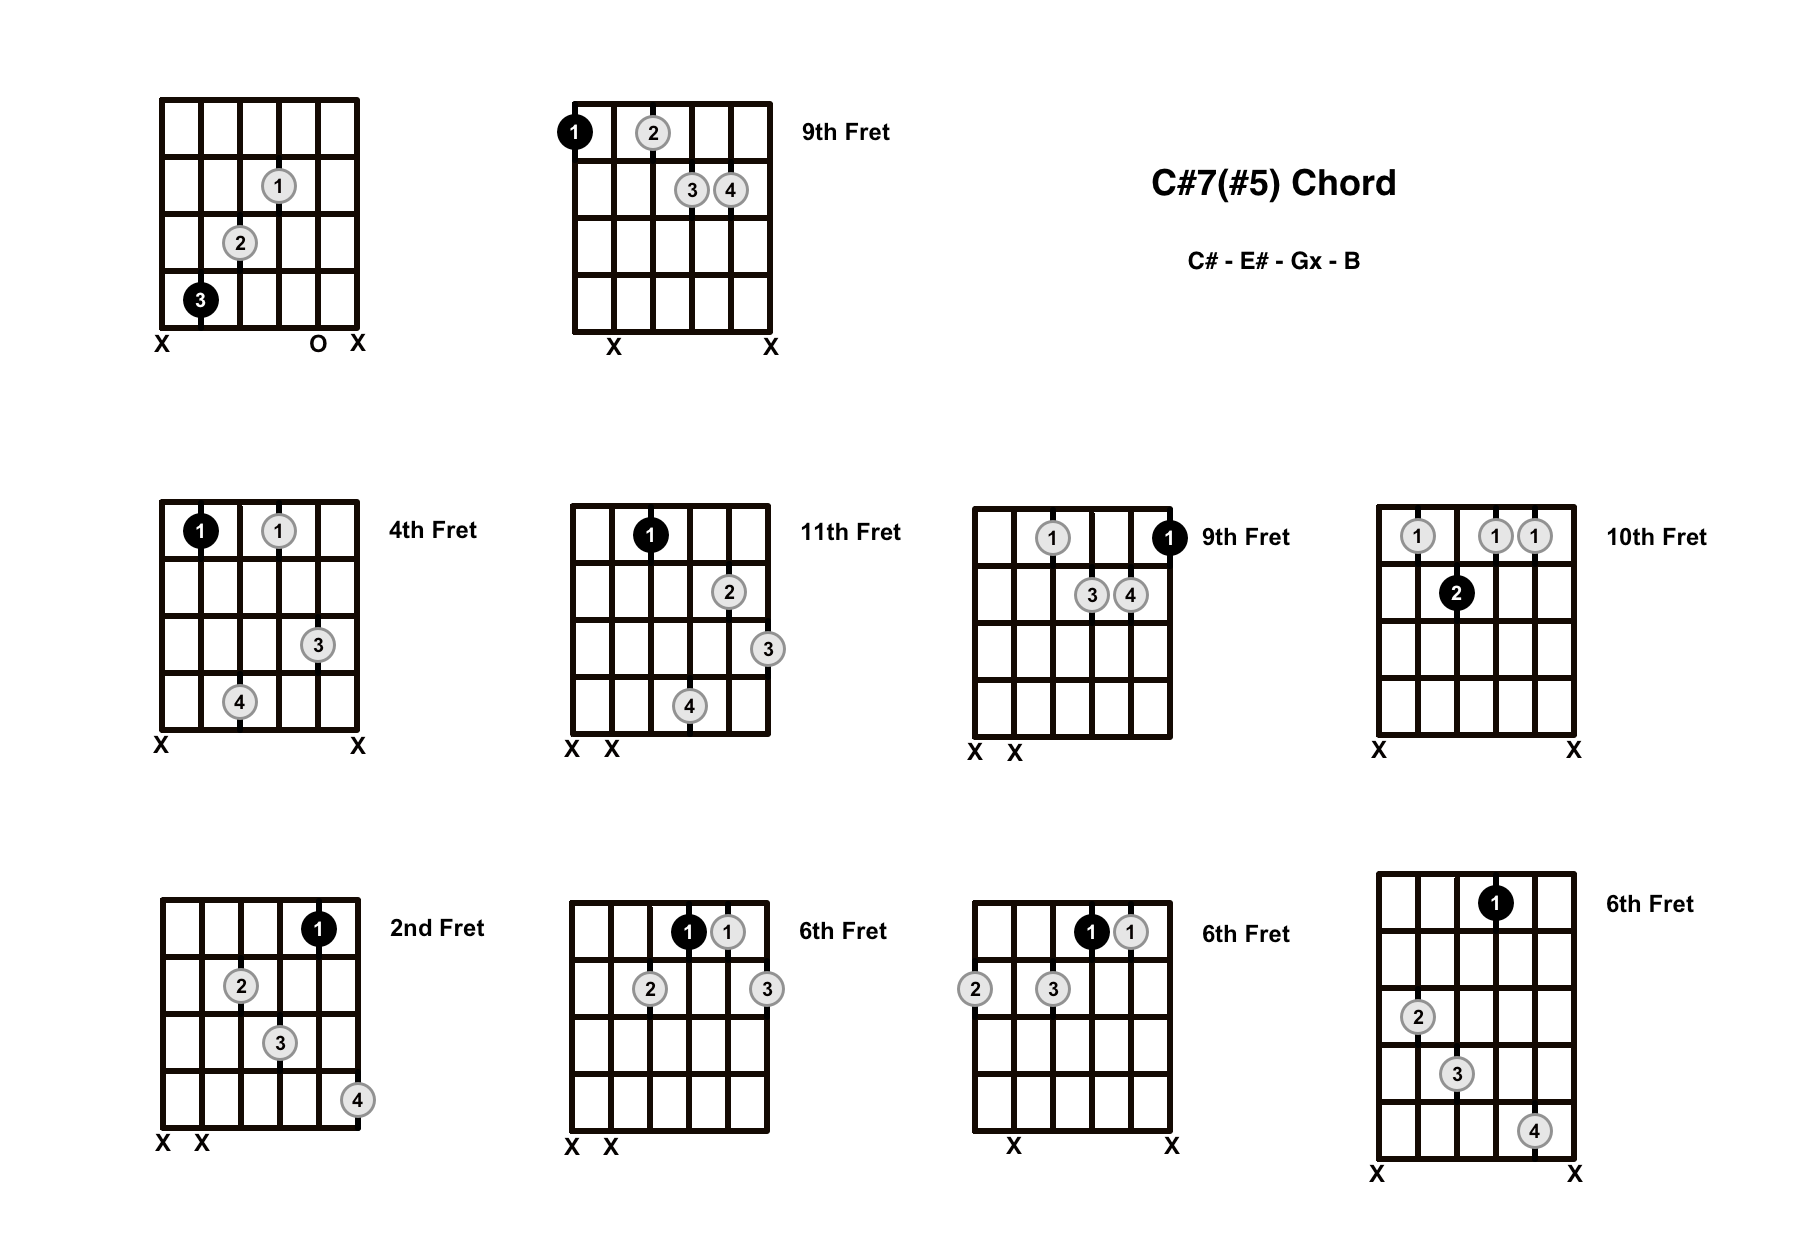 C Sharp Augmented 7 Chord On The Guitar (C#7#5, C#+7) – Diagrams, Finger Positions and Theory